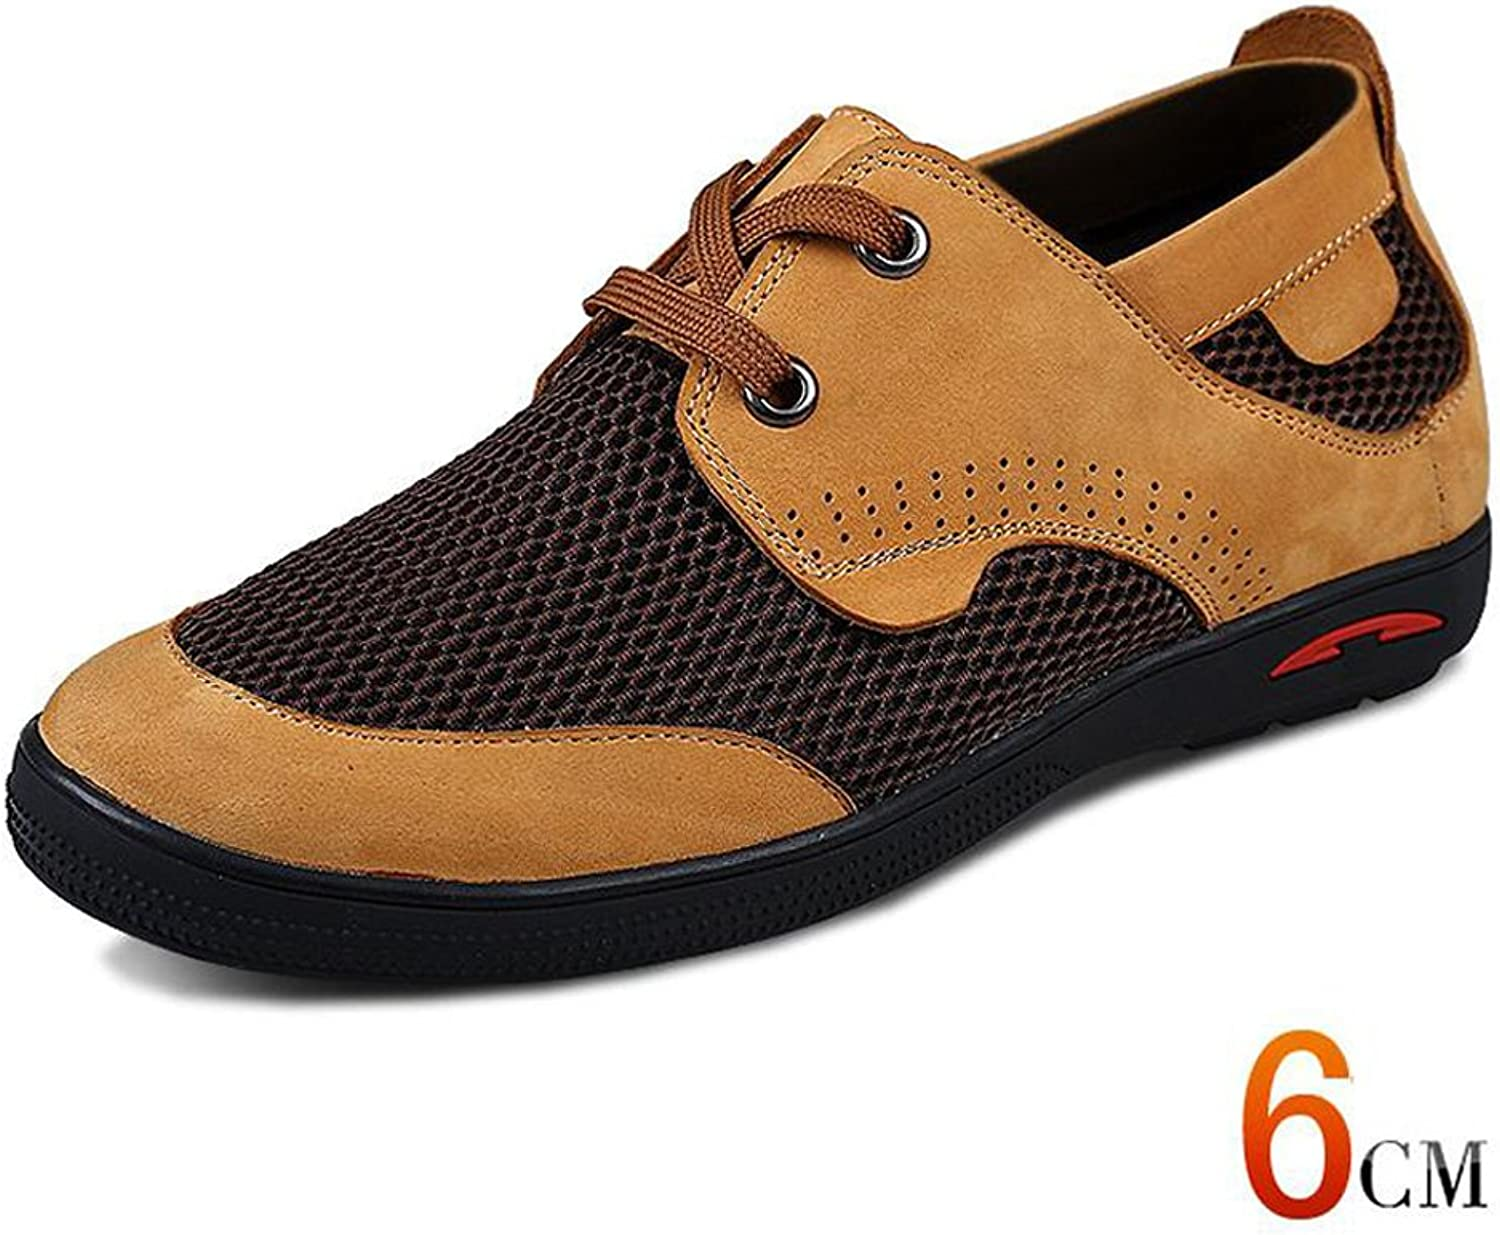 SXD 2.36 Inches Taller Men's Breathable Casual Leather Mesh shoes